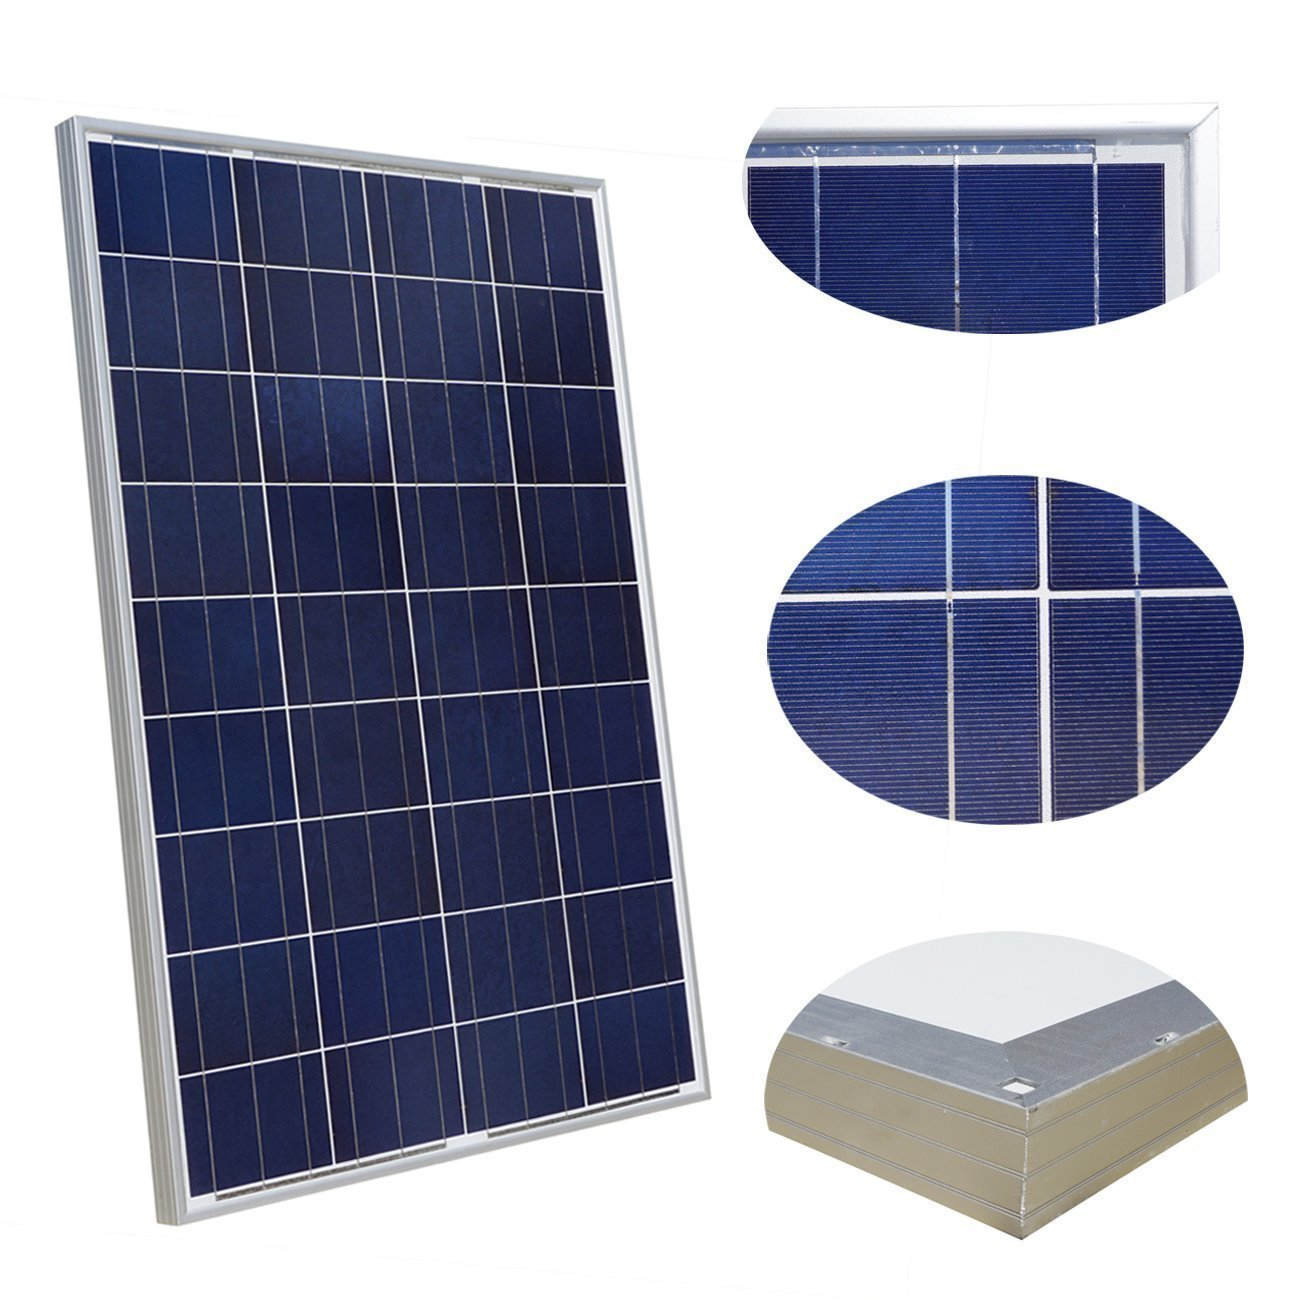 100 Watt Solar Panel Polycrystalline Photovoltaic ZODORE PV Module 90mm cable with MC4 12V Battery Charging for RV Boat Caravan, camper or yacht, for off-grid / backup solar power systems 100 watt by ZODORE